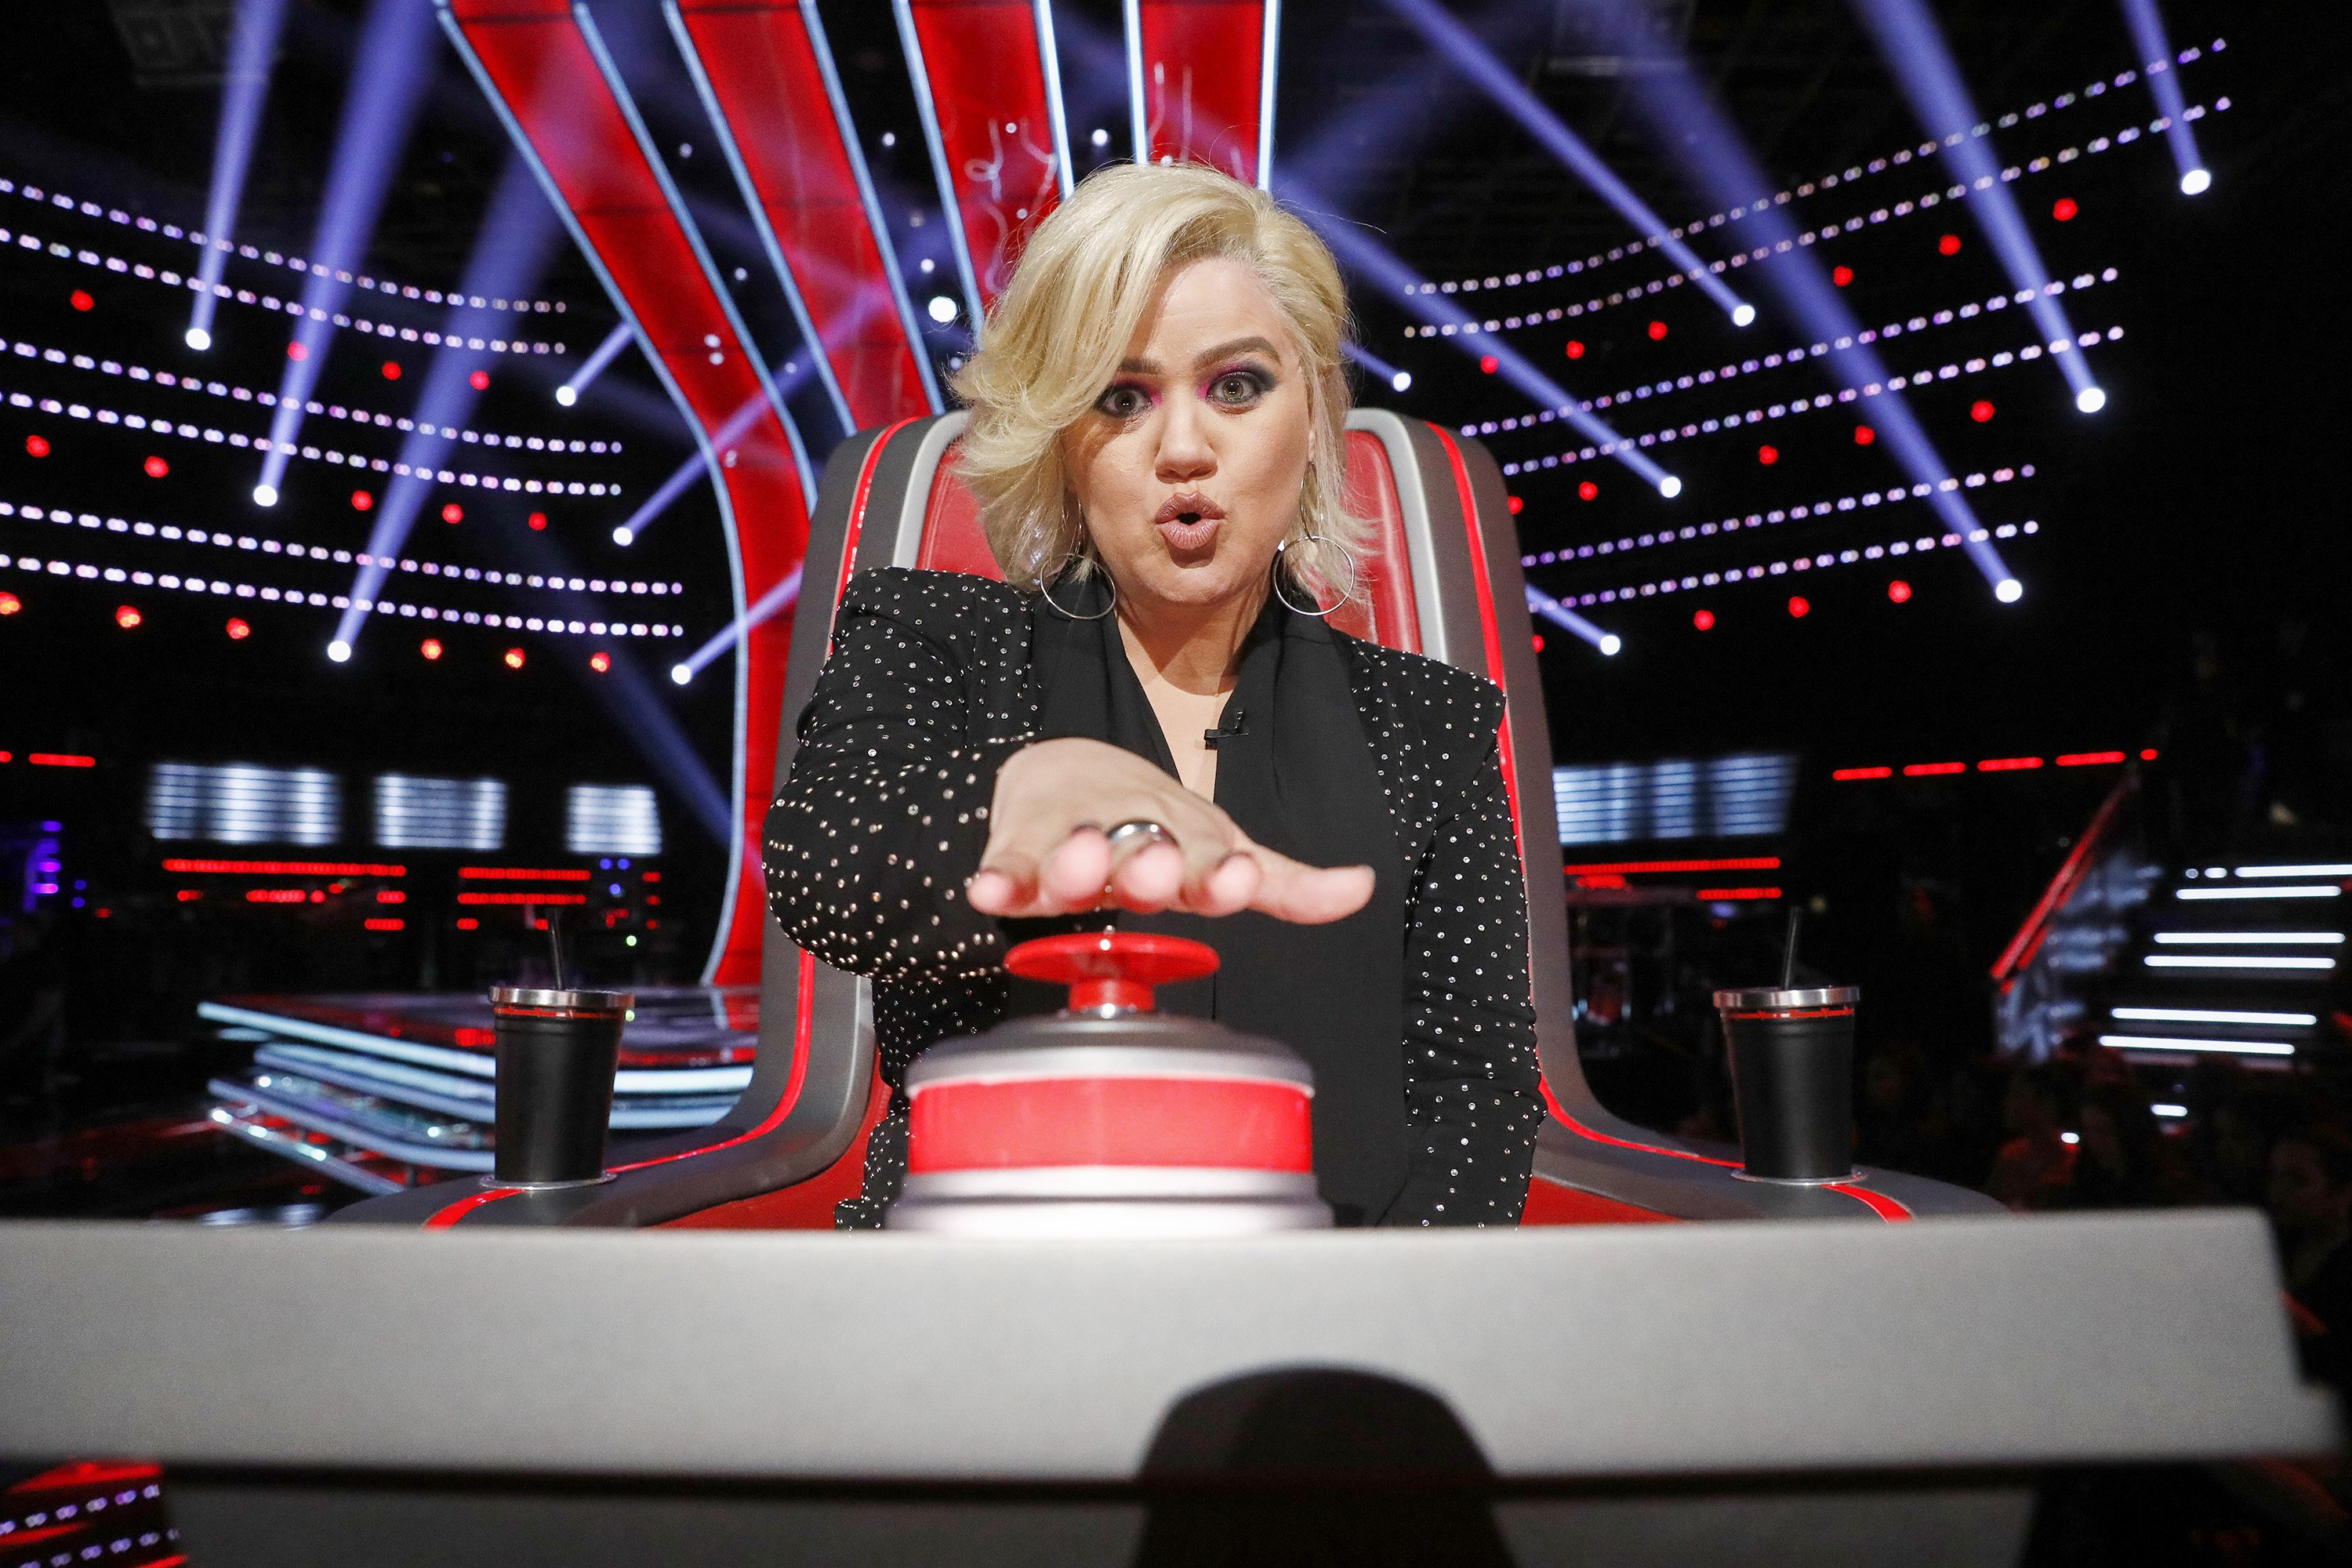 """Kelly Clarkson during season 18 of """"The Voice."""" 